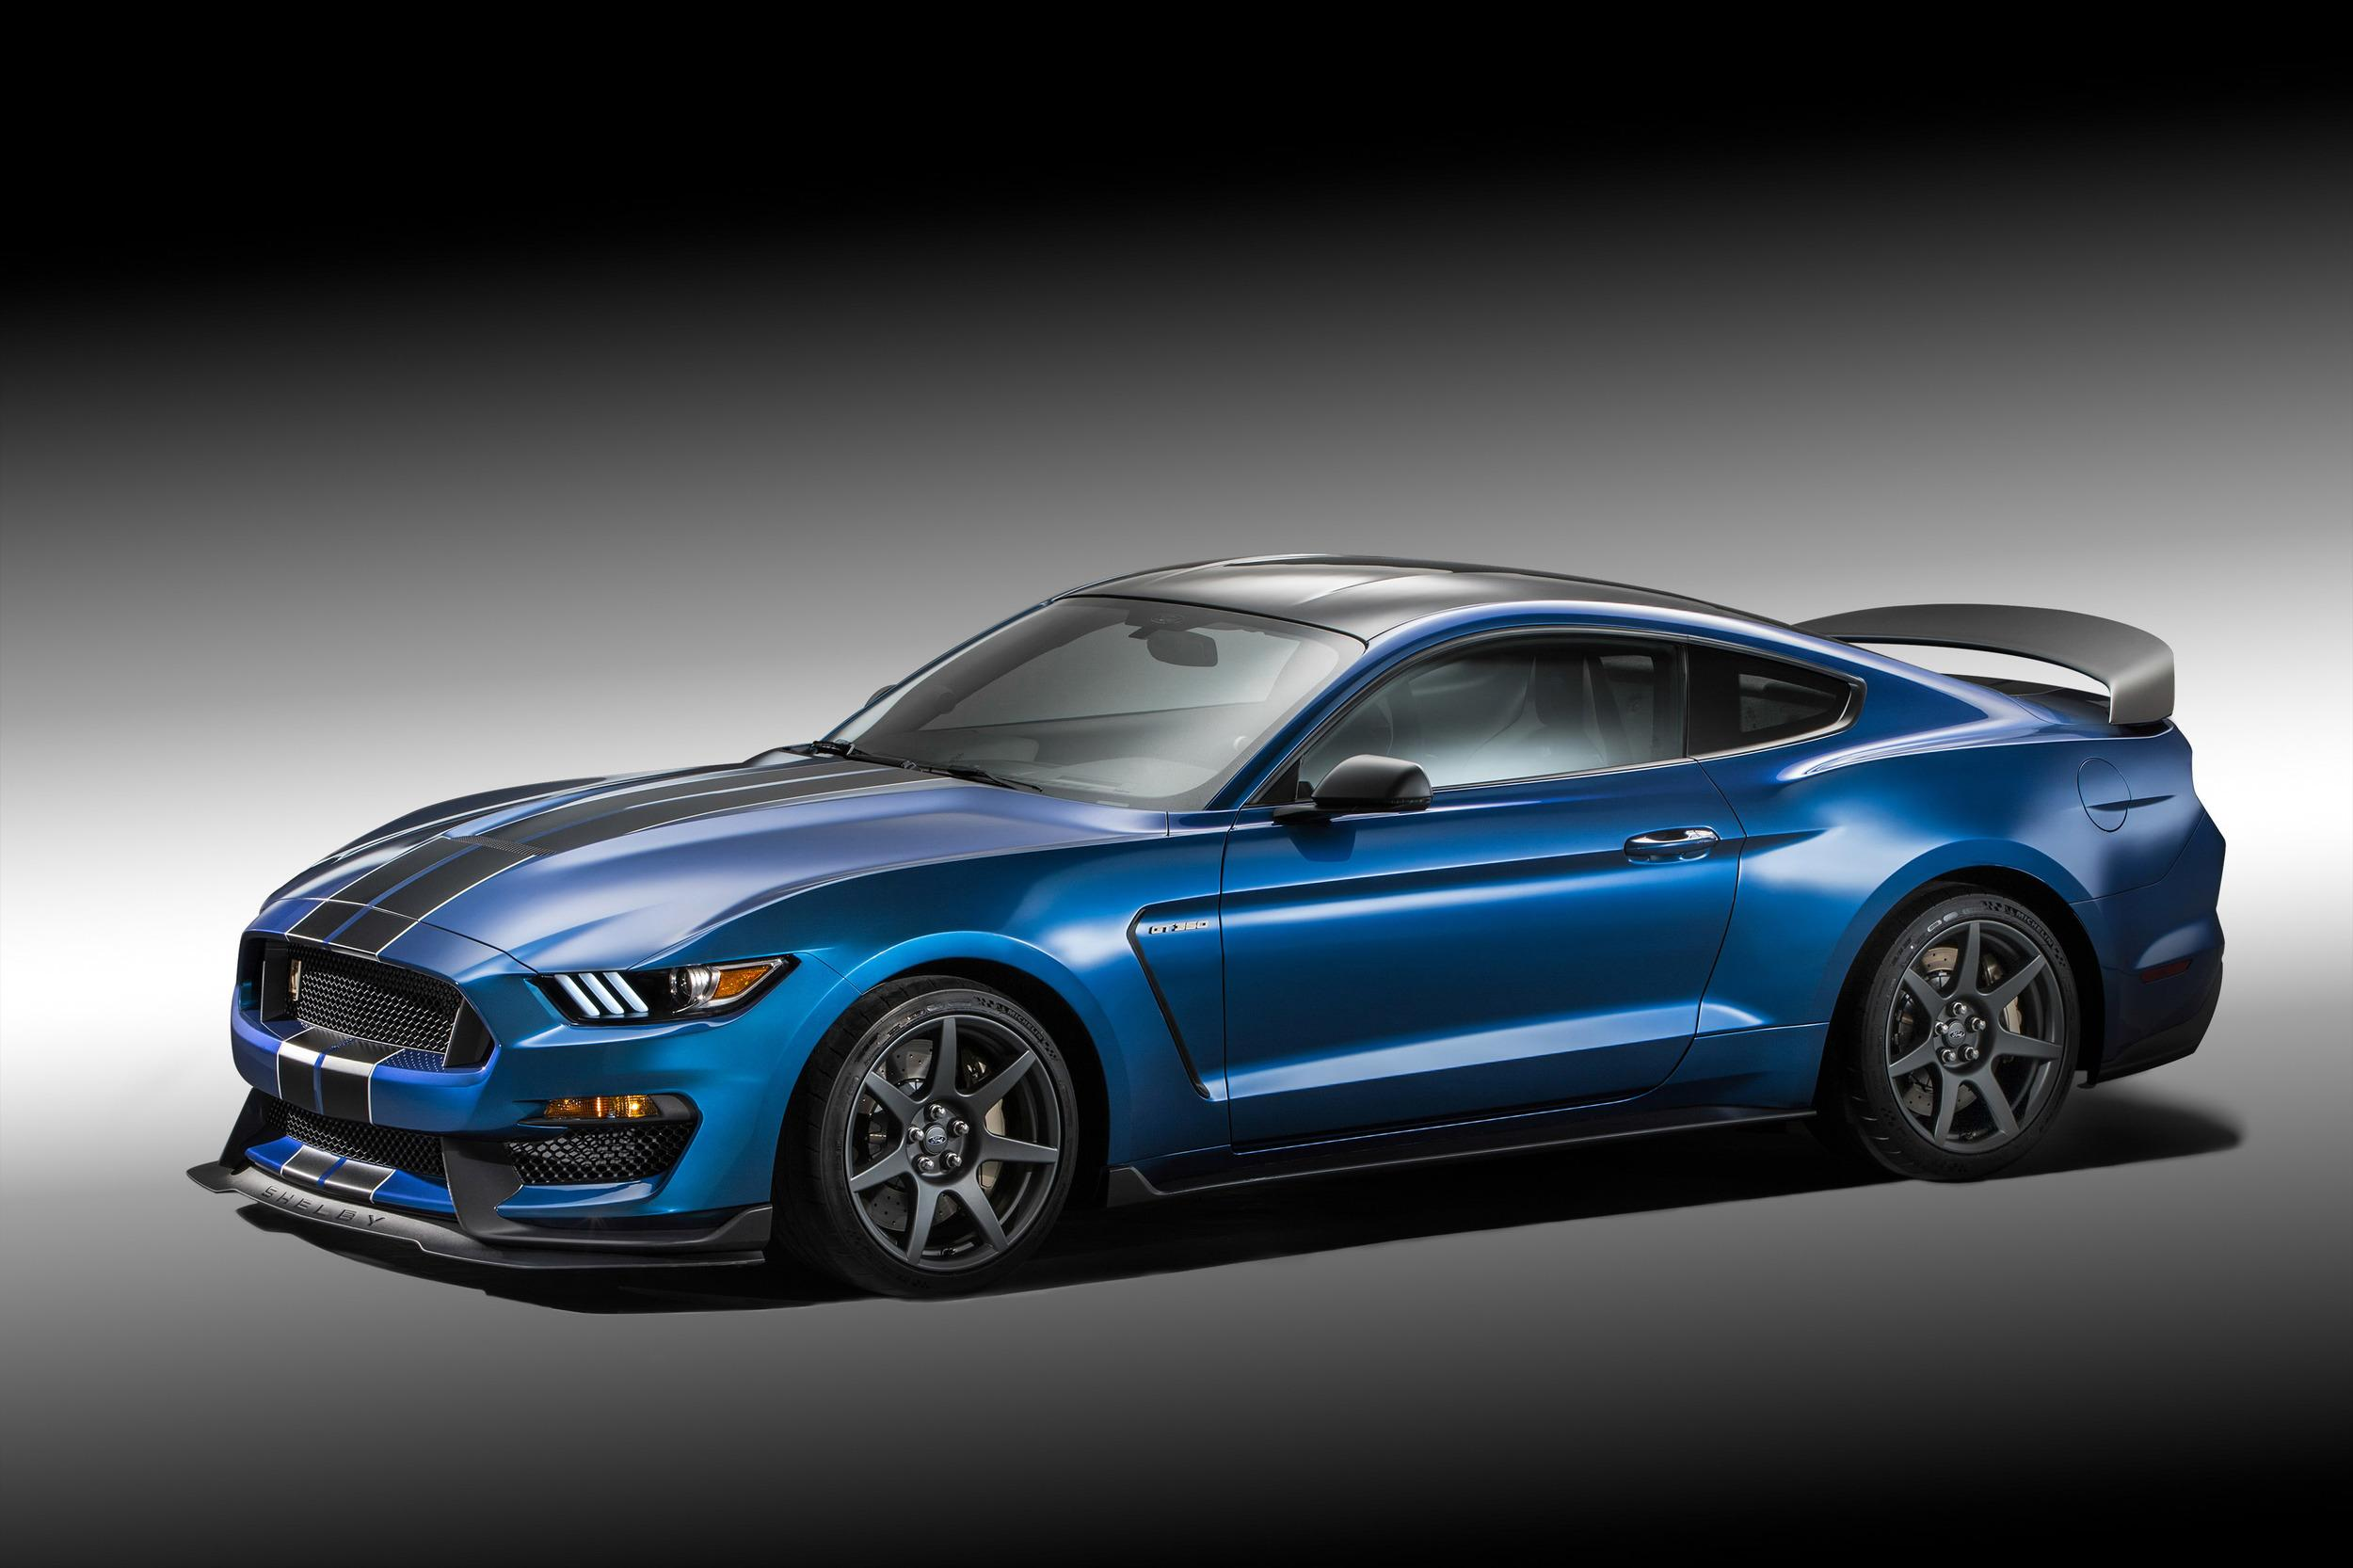 2016 Ford Shelby Gt350 #7